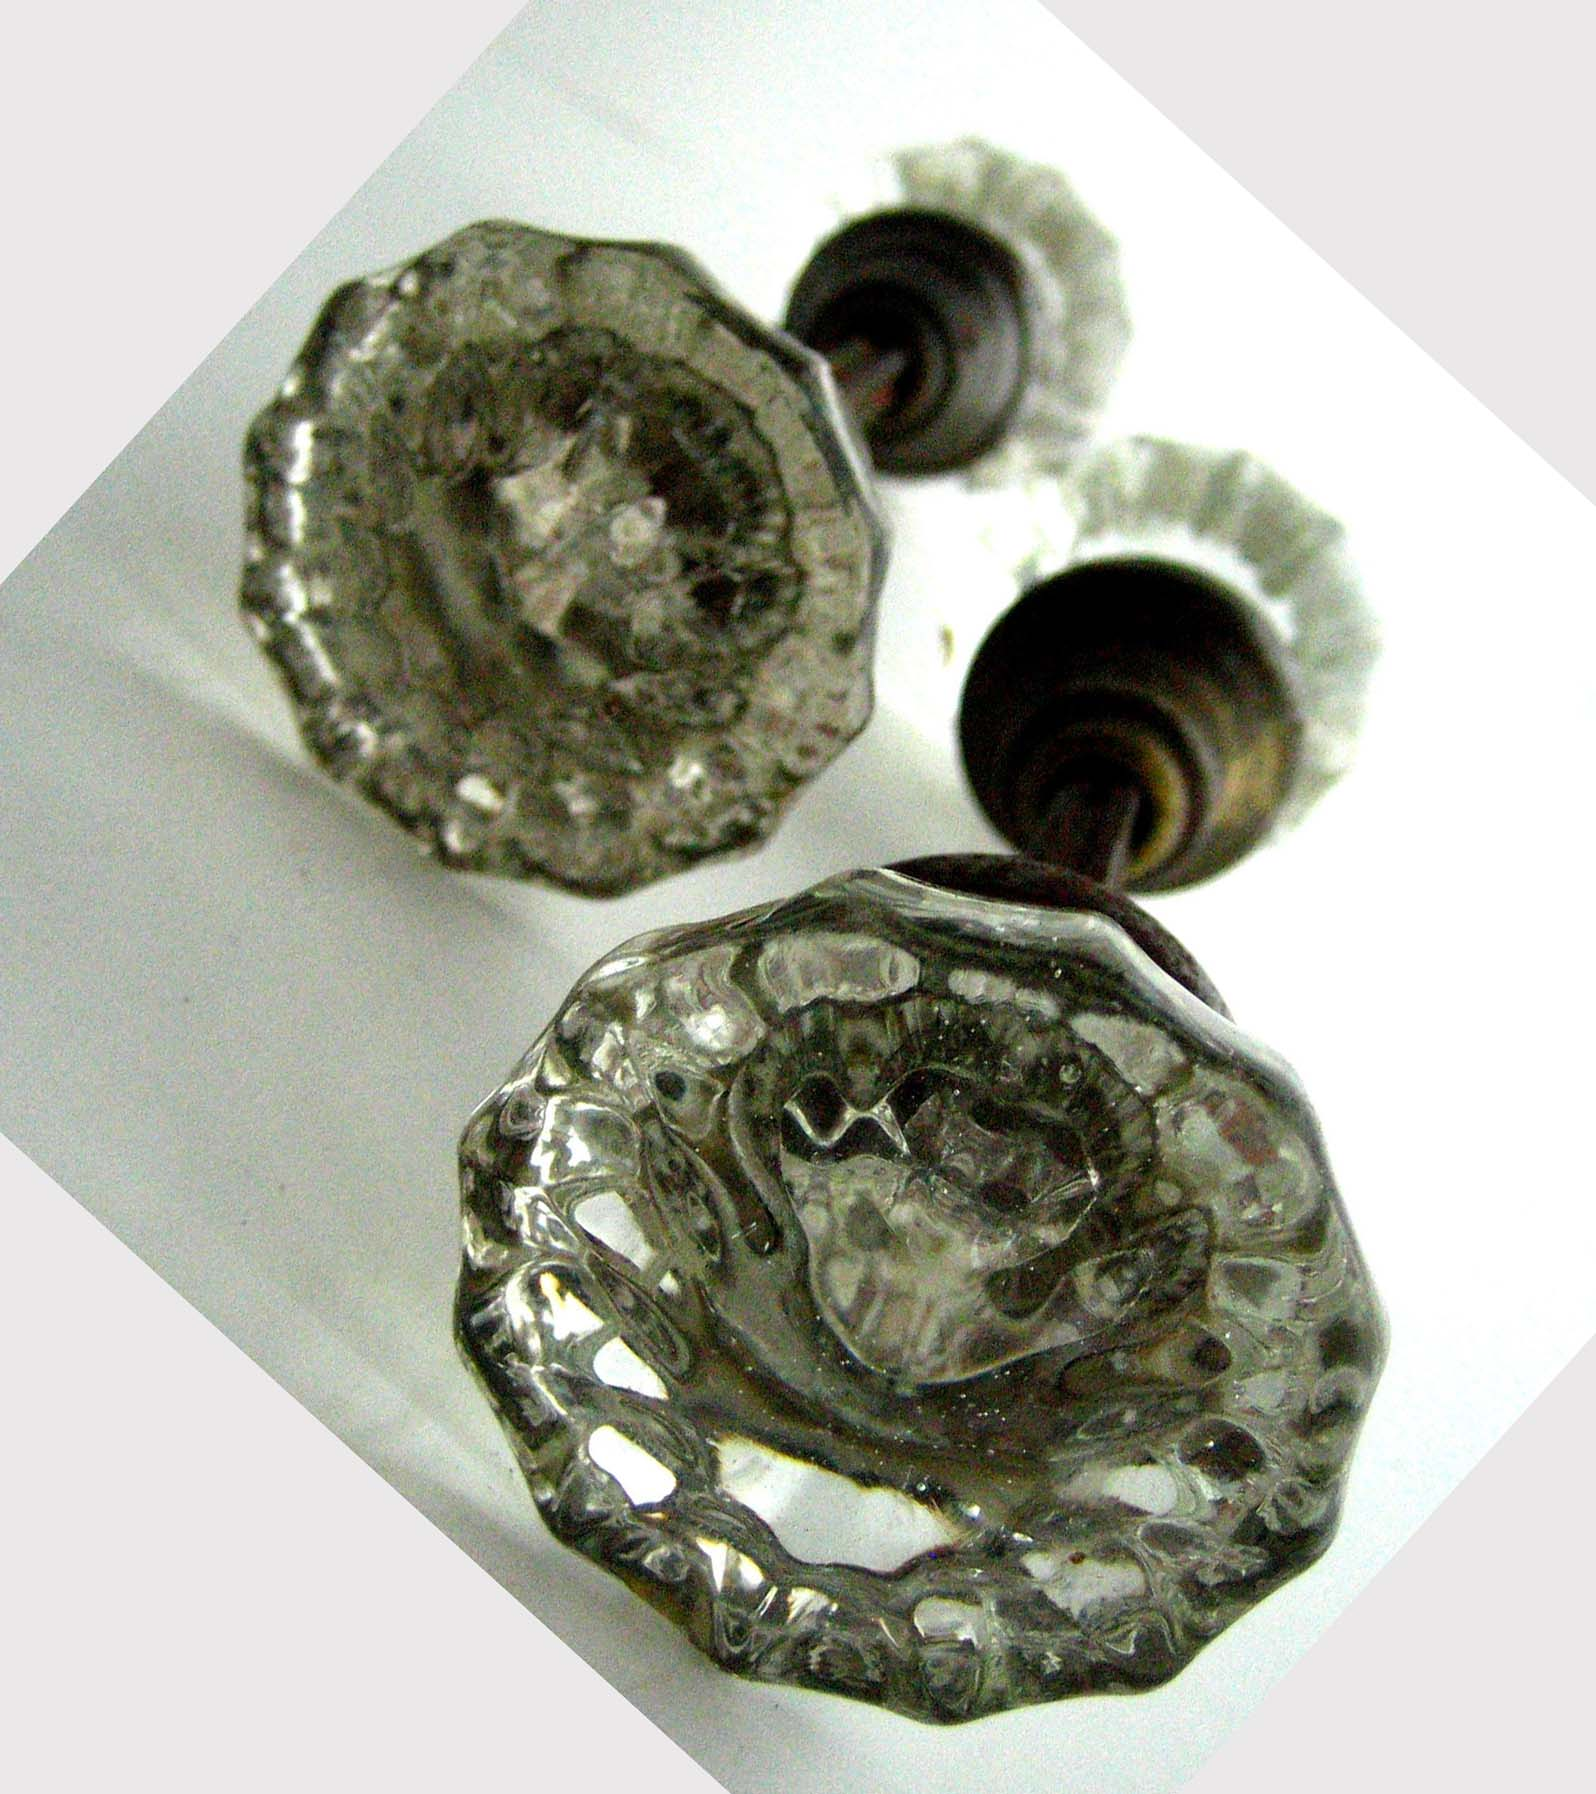 knobs nyc wedding doors vintage knob by mandy pretty on sticos forlenza vases old diy bud door featured chicks little rentals glass